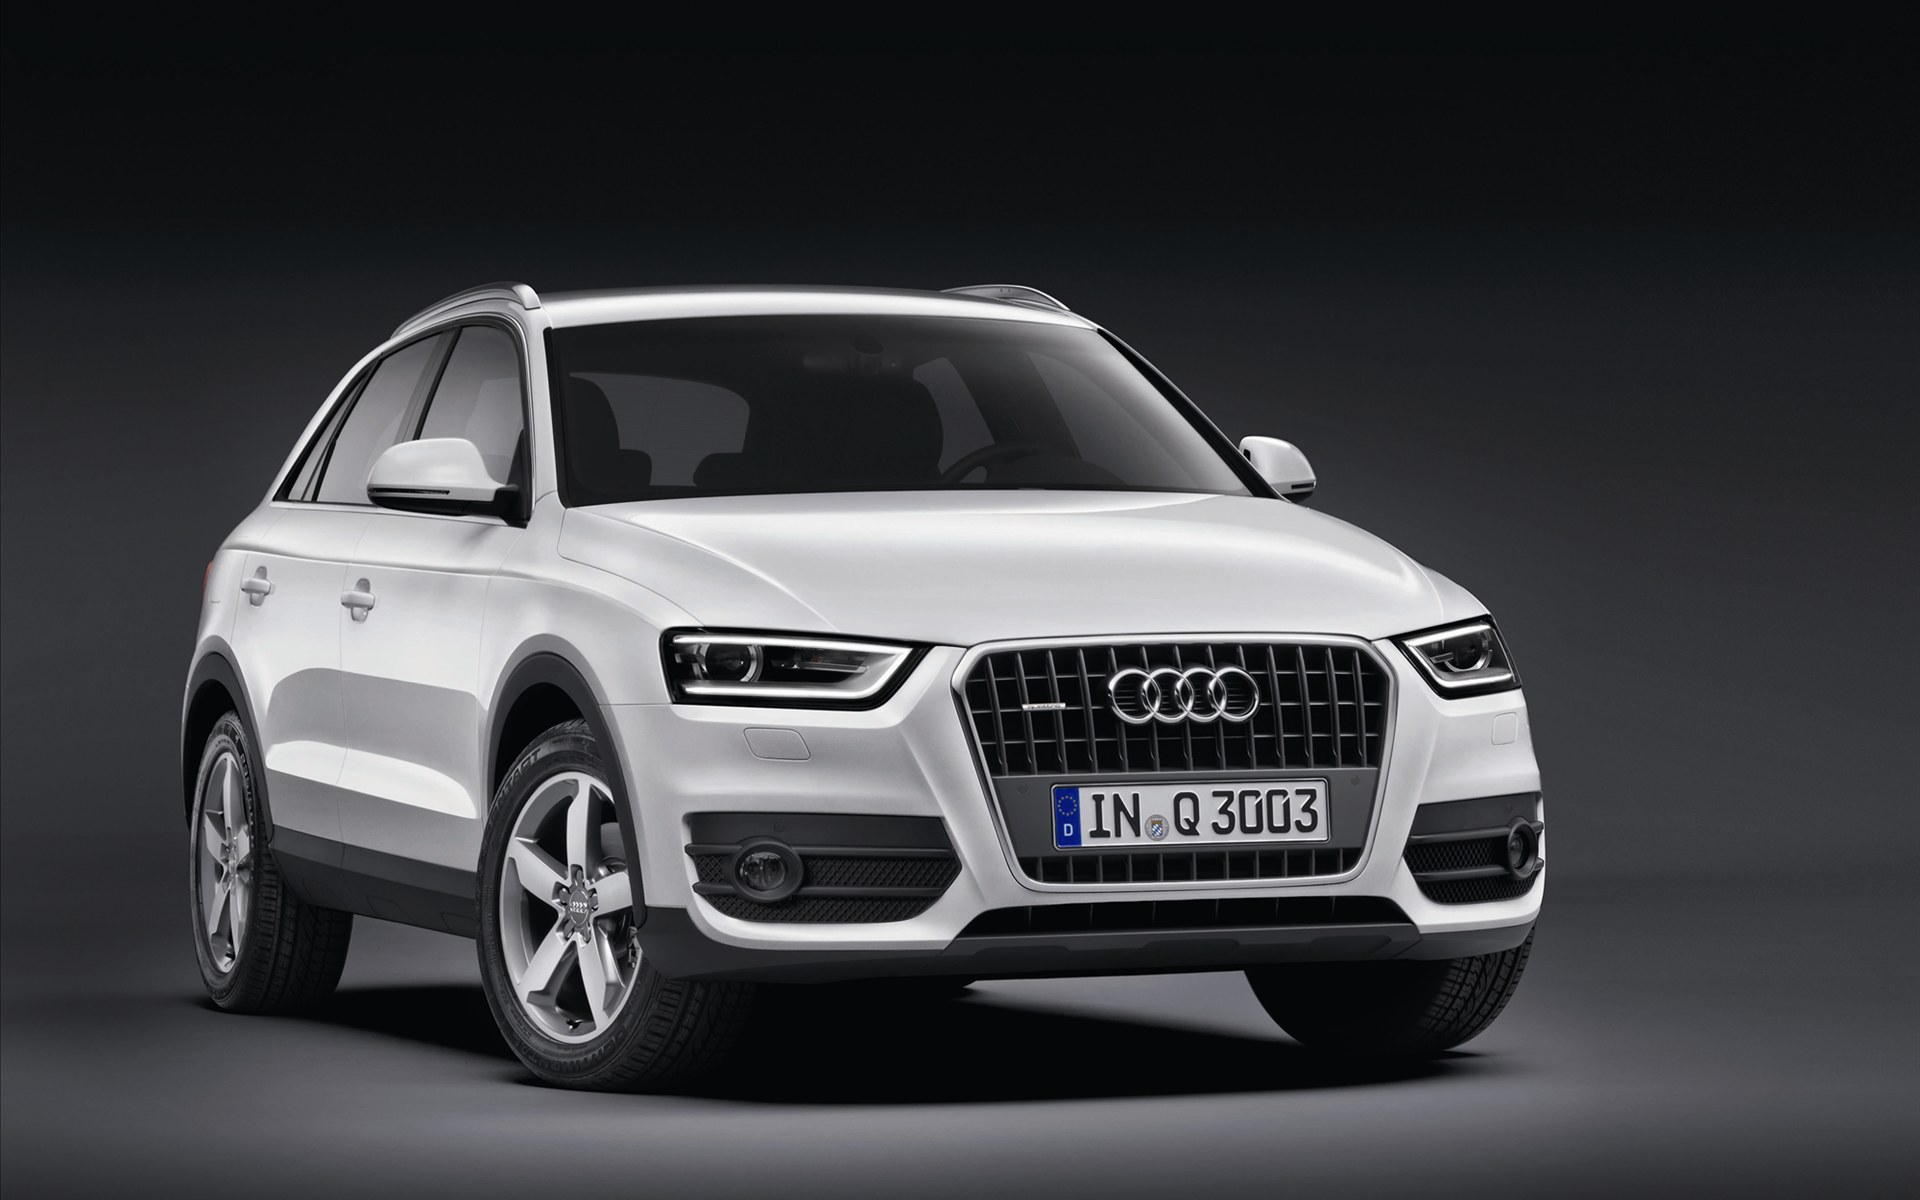 2012 AUDI Q3 Wallpaper HD Car Wallpapers 1920x1200